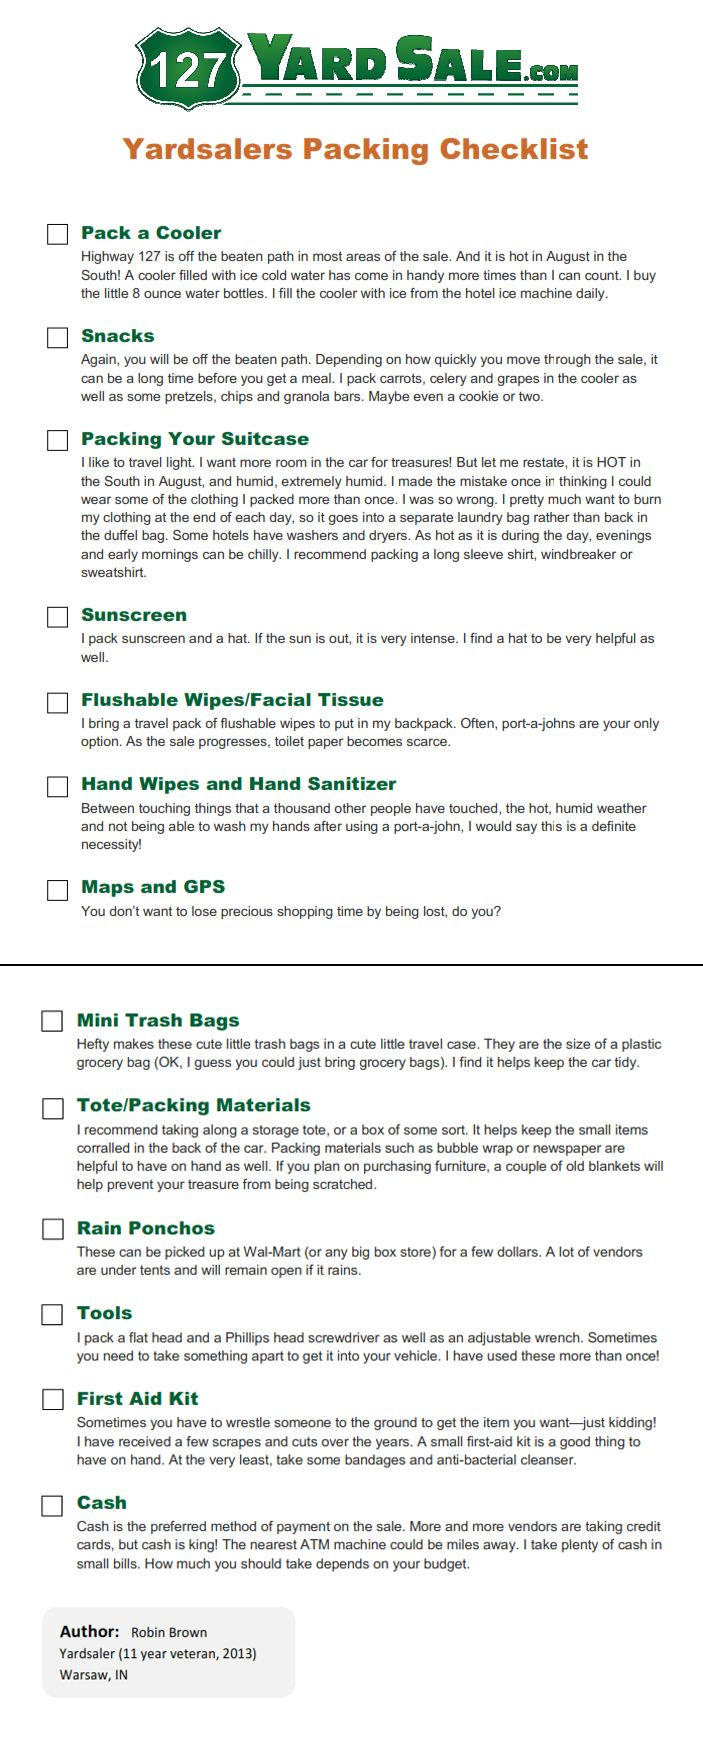 View and print our Yardsaler's Packing Checklist so you don't forget to bring any of the must have items for your 127 Yard Sale trip.